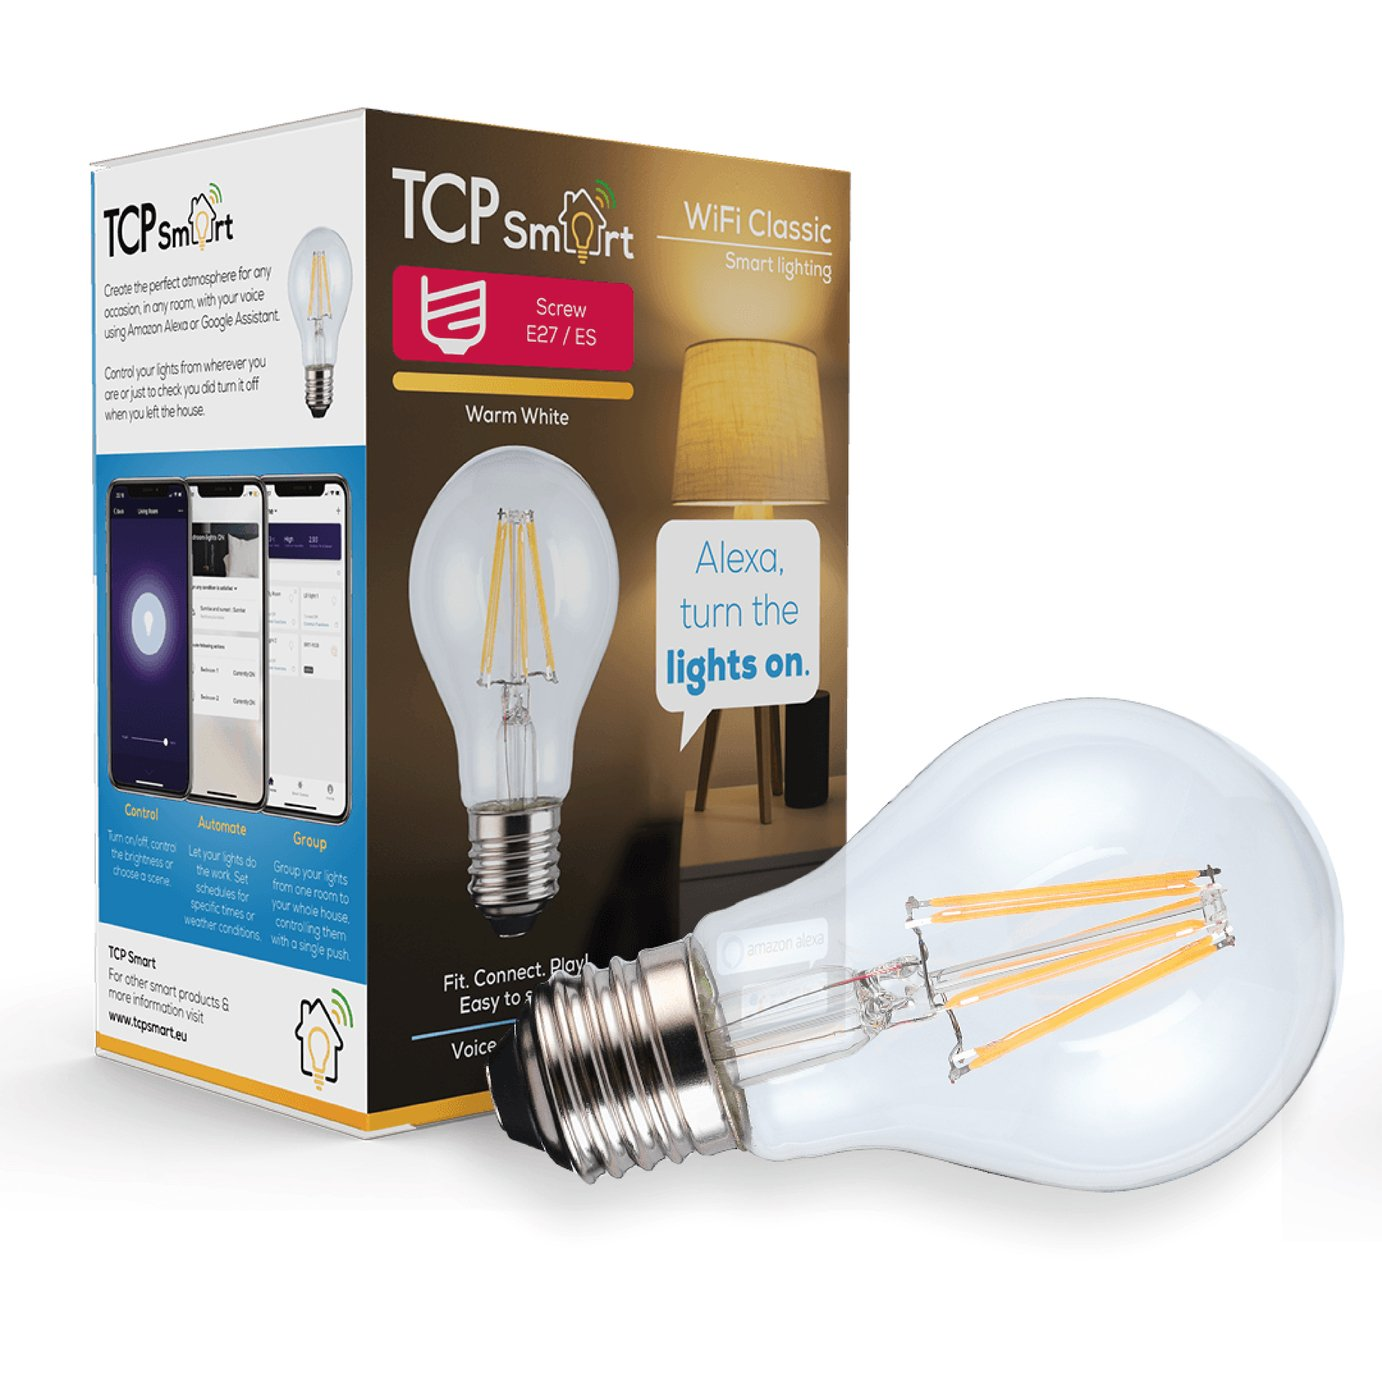 TCP E27 Smart Wi-Fi LED Filament Classic Bulb